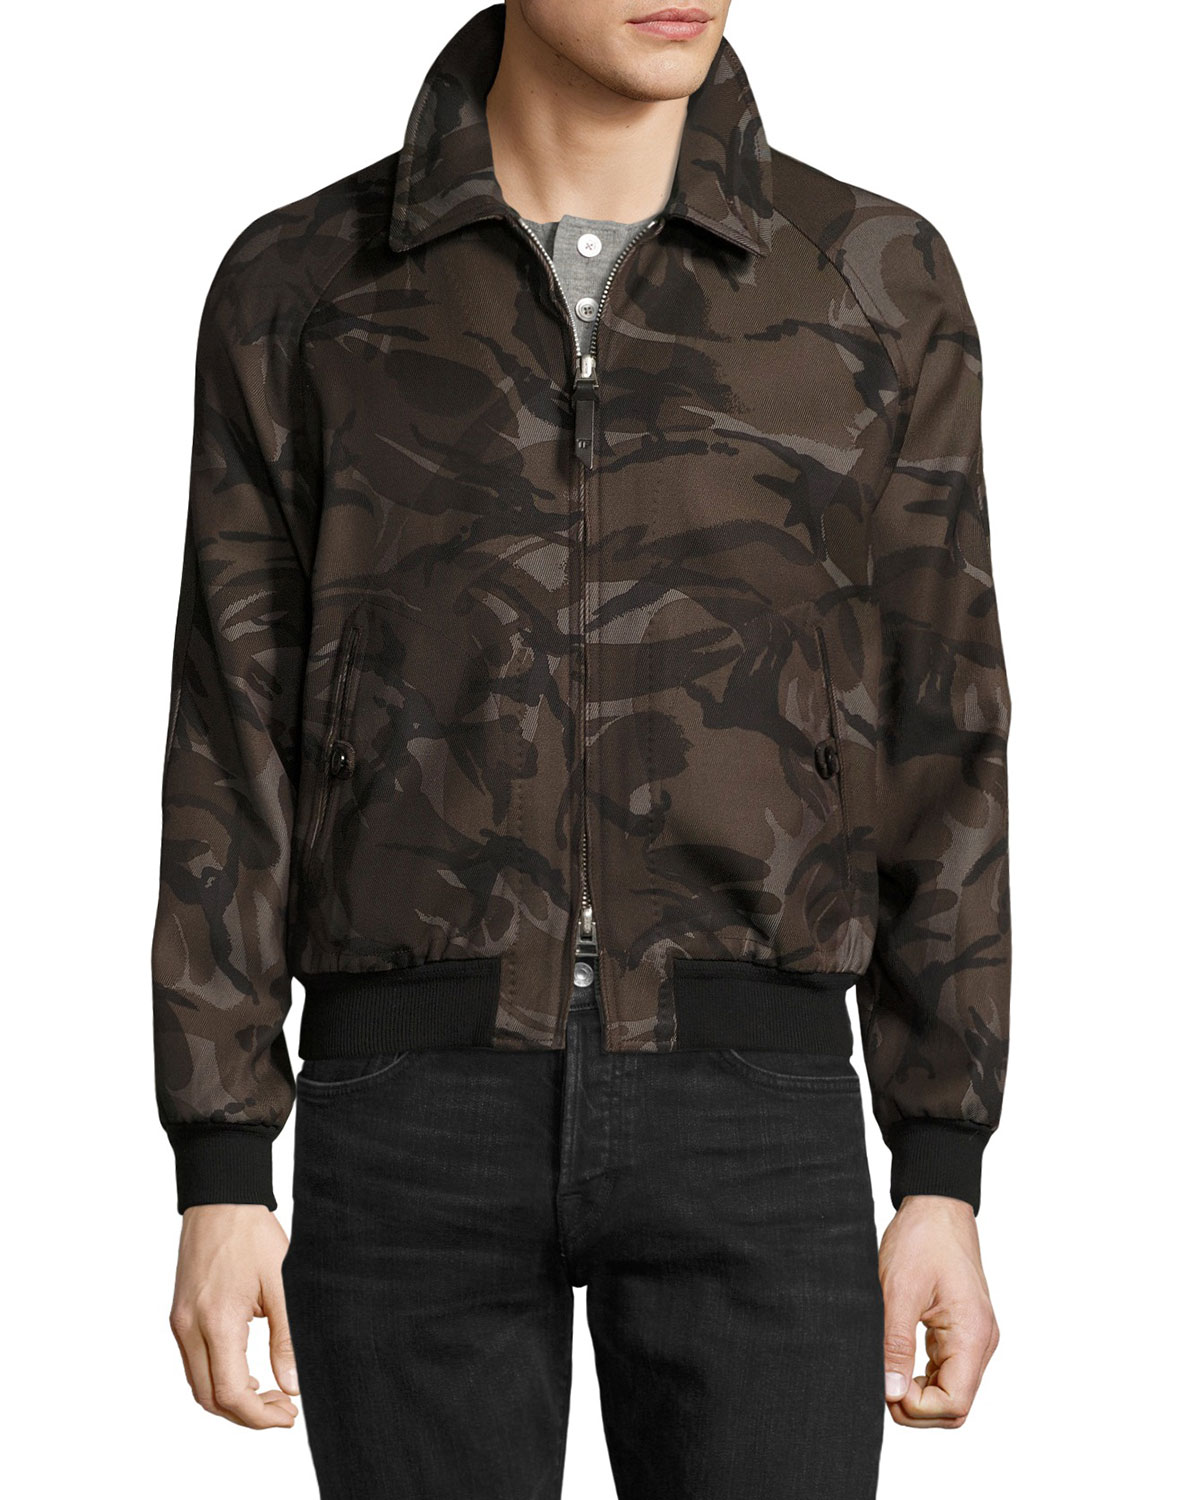 bb4232a9aed TOM FORD Camouflage Raglan Bomber Jacket